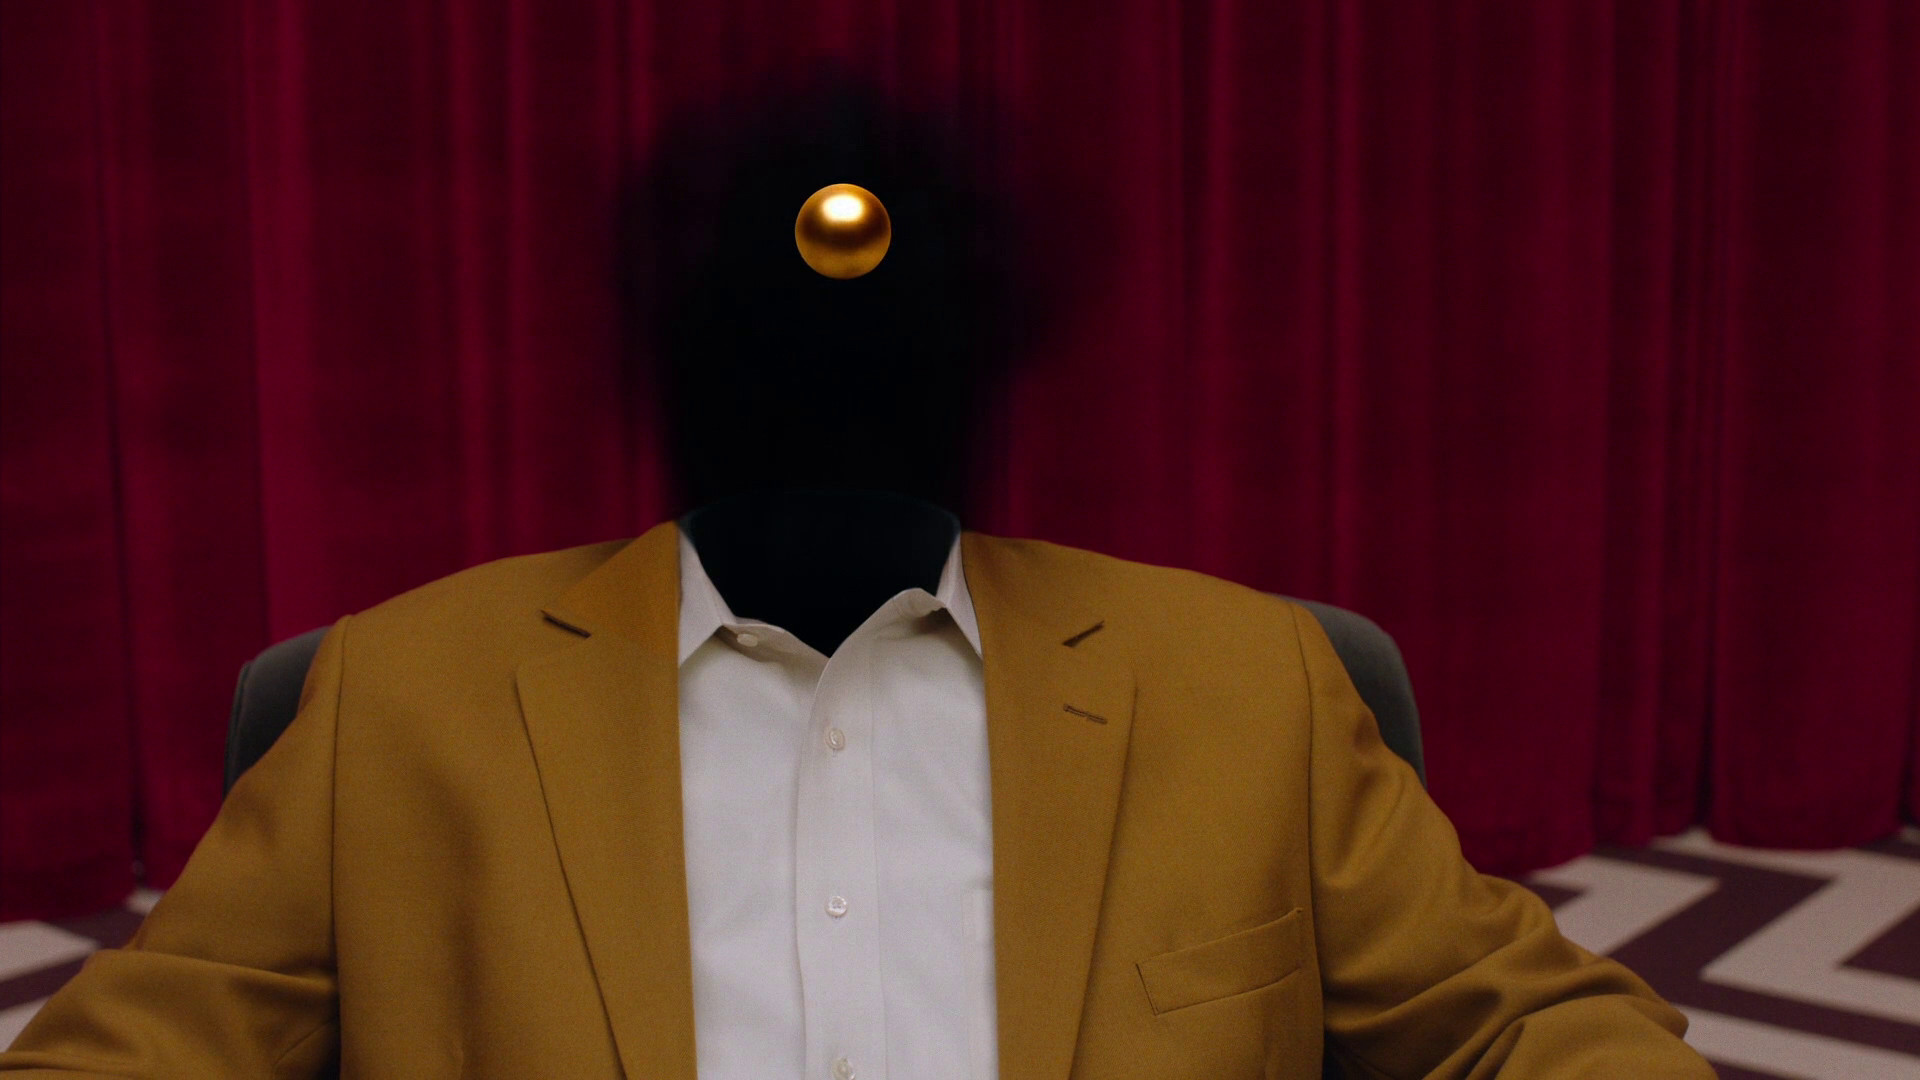 Manufacture Your Own Tulpa With This Twin Peaks Camera Effect For